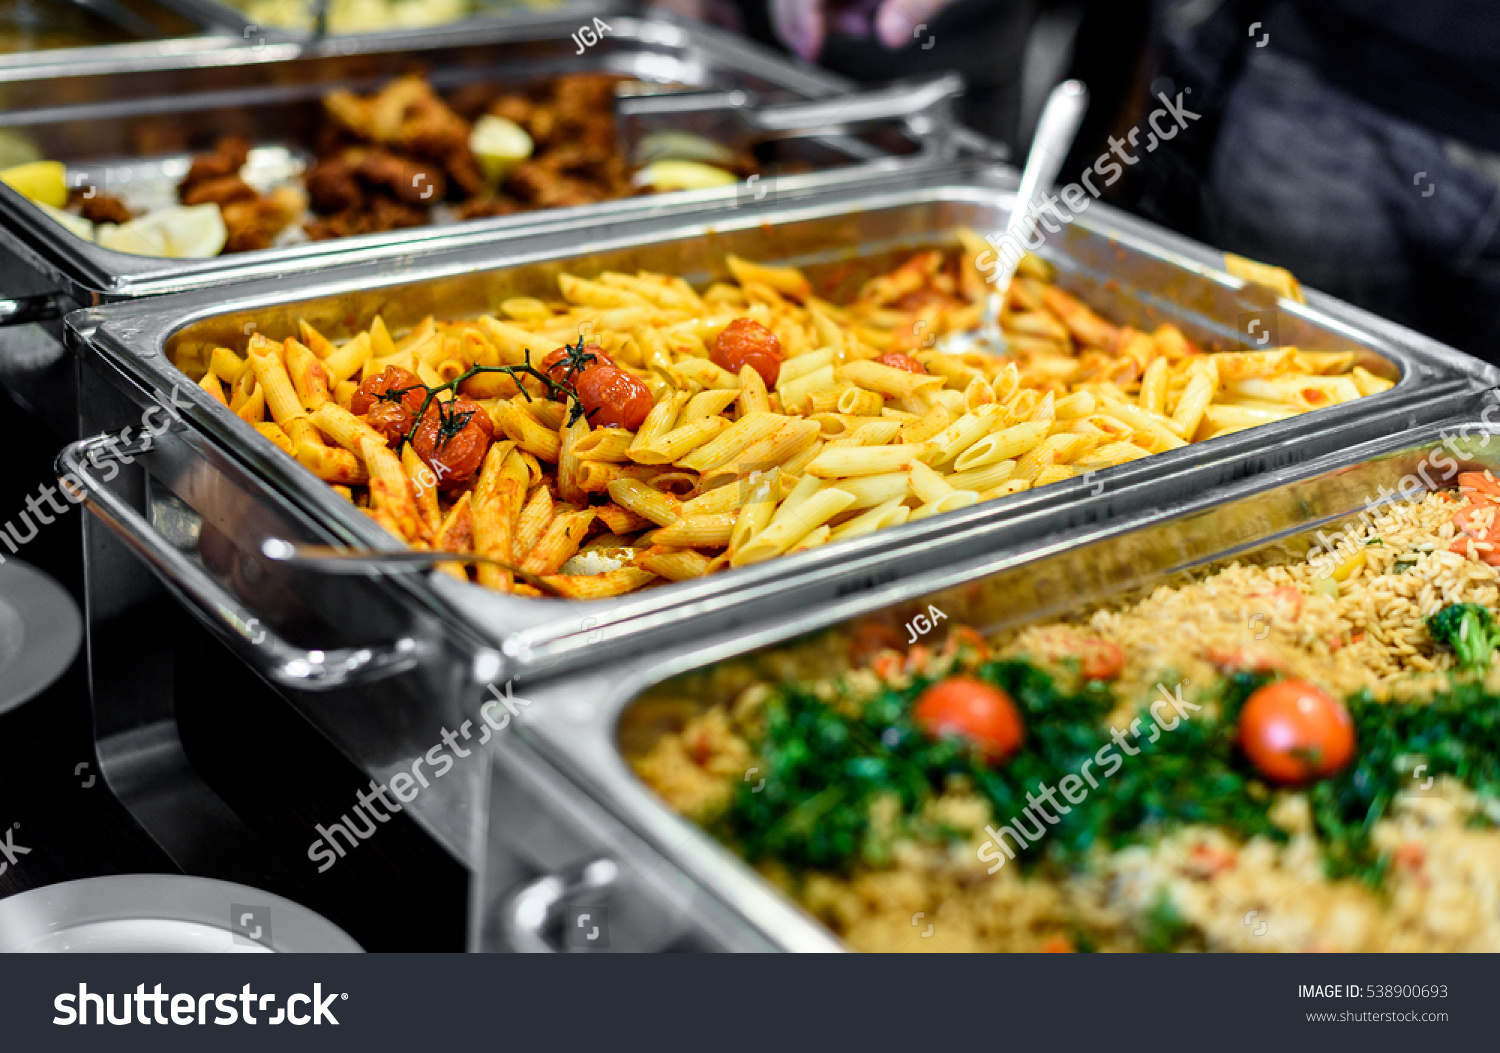 cuisine culinary buffet dinner catering dining stock photo 538900693 shutterstock. Black Bedroom Furniture Sets. Home Design Ideas